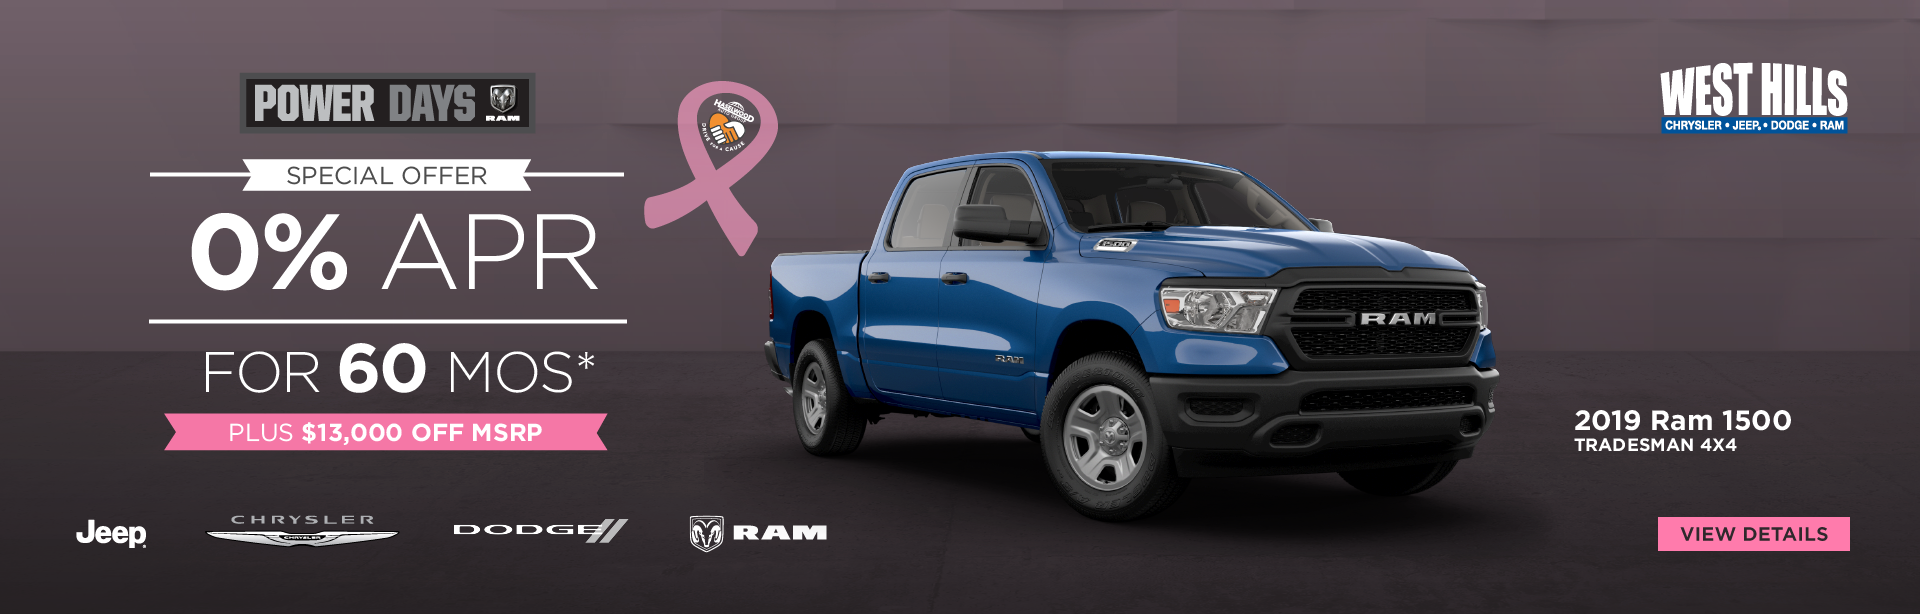 2019 RAM 1500 TRADESMAN 4x4  0% for 60 mos.*  PLUS $13,000 OFF of MSRP   *Offer valid on 2019 RAM 1500 TRADESMAN 4x4. 0% for 60 mos. Based on MSRP $46,805. WHCJDR Discount: $5,750. Rebate: $7,250. Sale Price: $33,805. VIN: 1C6RR7FT7KS643094. Subject to credit approval. Based on approval of program ID 70AK1C, 44CKB3, 45CKL1, 45CKL2 45CKL3, 45CKL4, 45CKL5, 45CKL6, 45CKL7, 45CKL8, WECKA1, WECKA. Down payment and monthly payment may vary. 60 months at $13.89 per $1,000 financed. Excludes state and local taxes, tags, registration and title, insurance and dealer charges.  A negotiable dealer documentary service fee of up to $150 may be added to the sale price or capitalized cost. Offer expires:  10/31/2019.